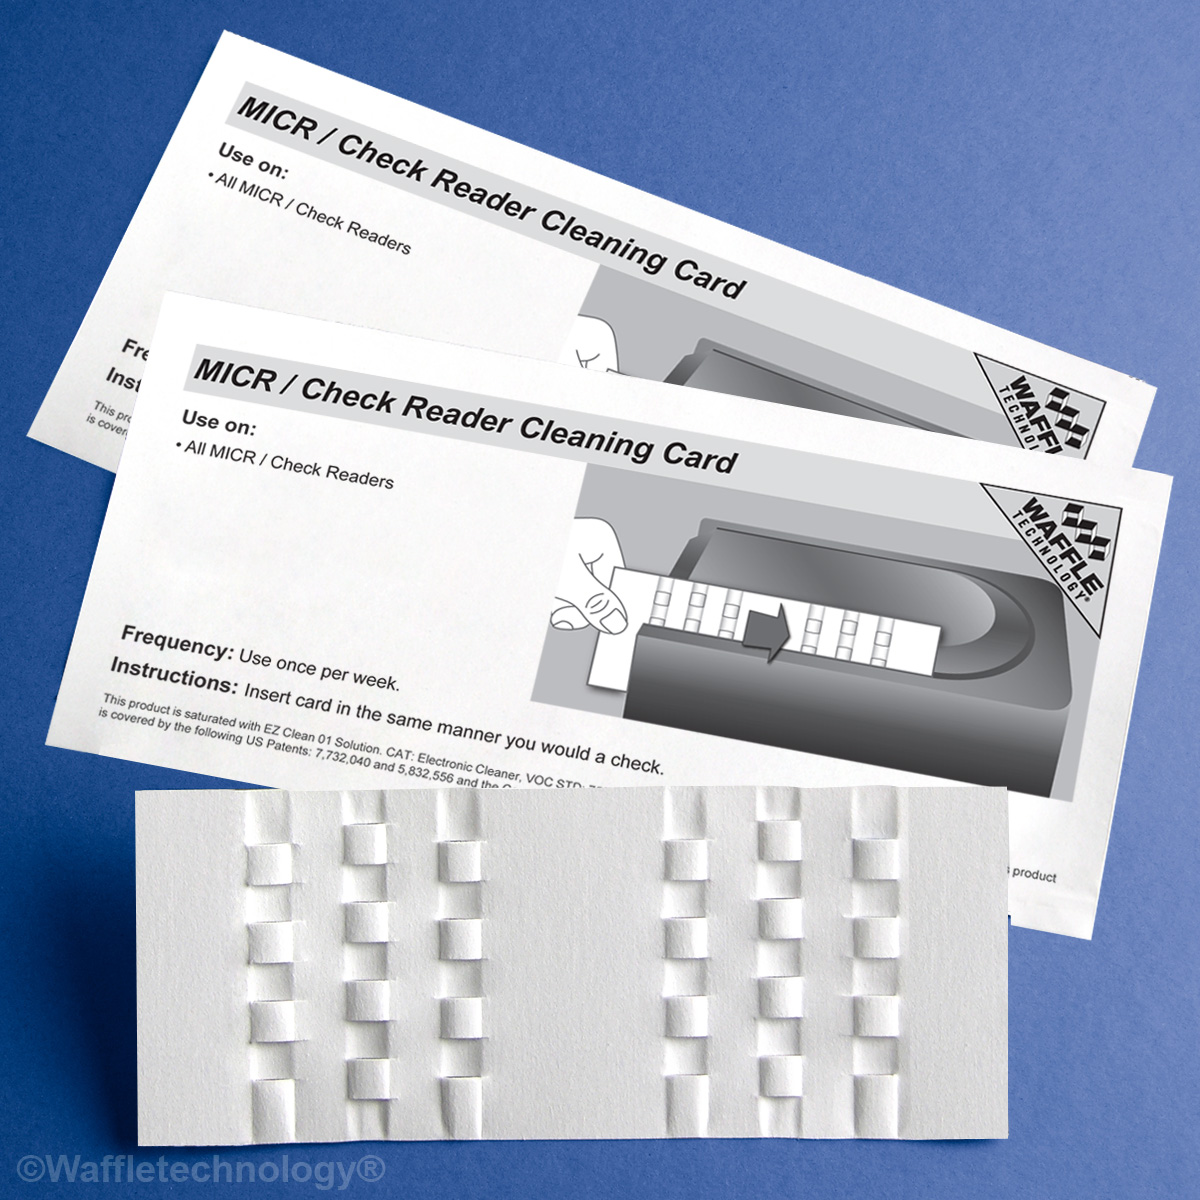 MICR/Check Reader Cleaning Card featuring Waffletechnology®